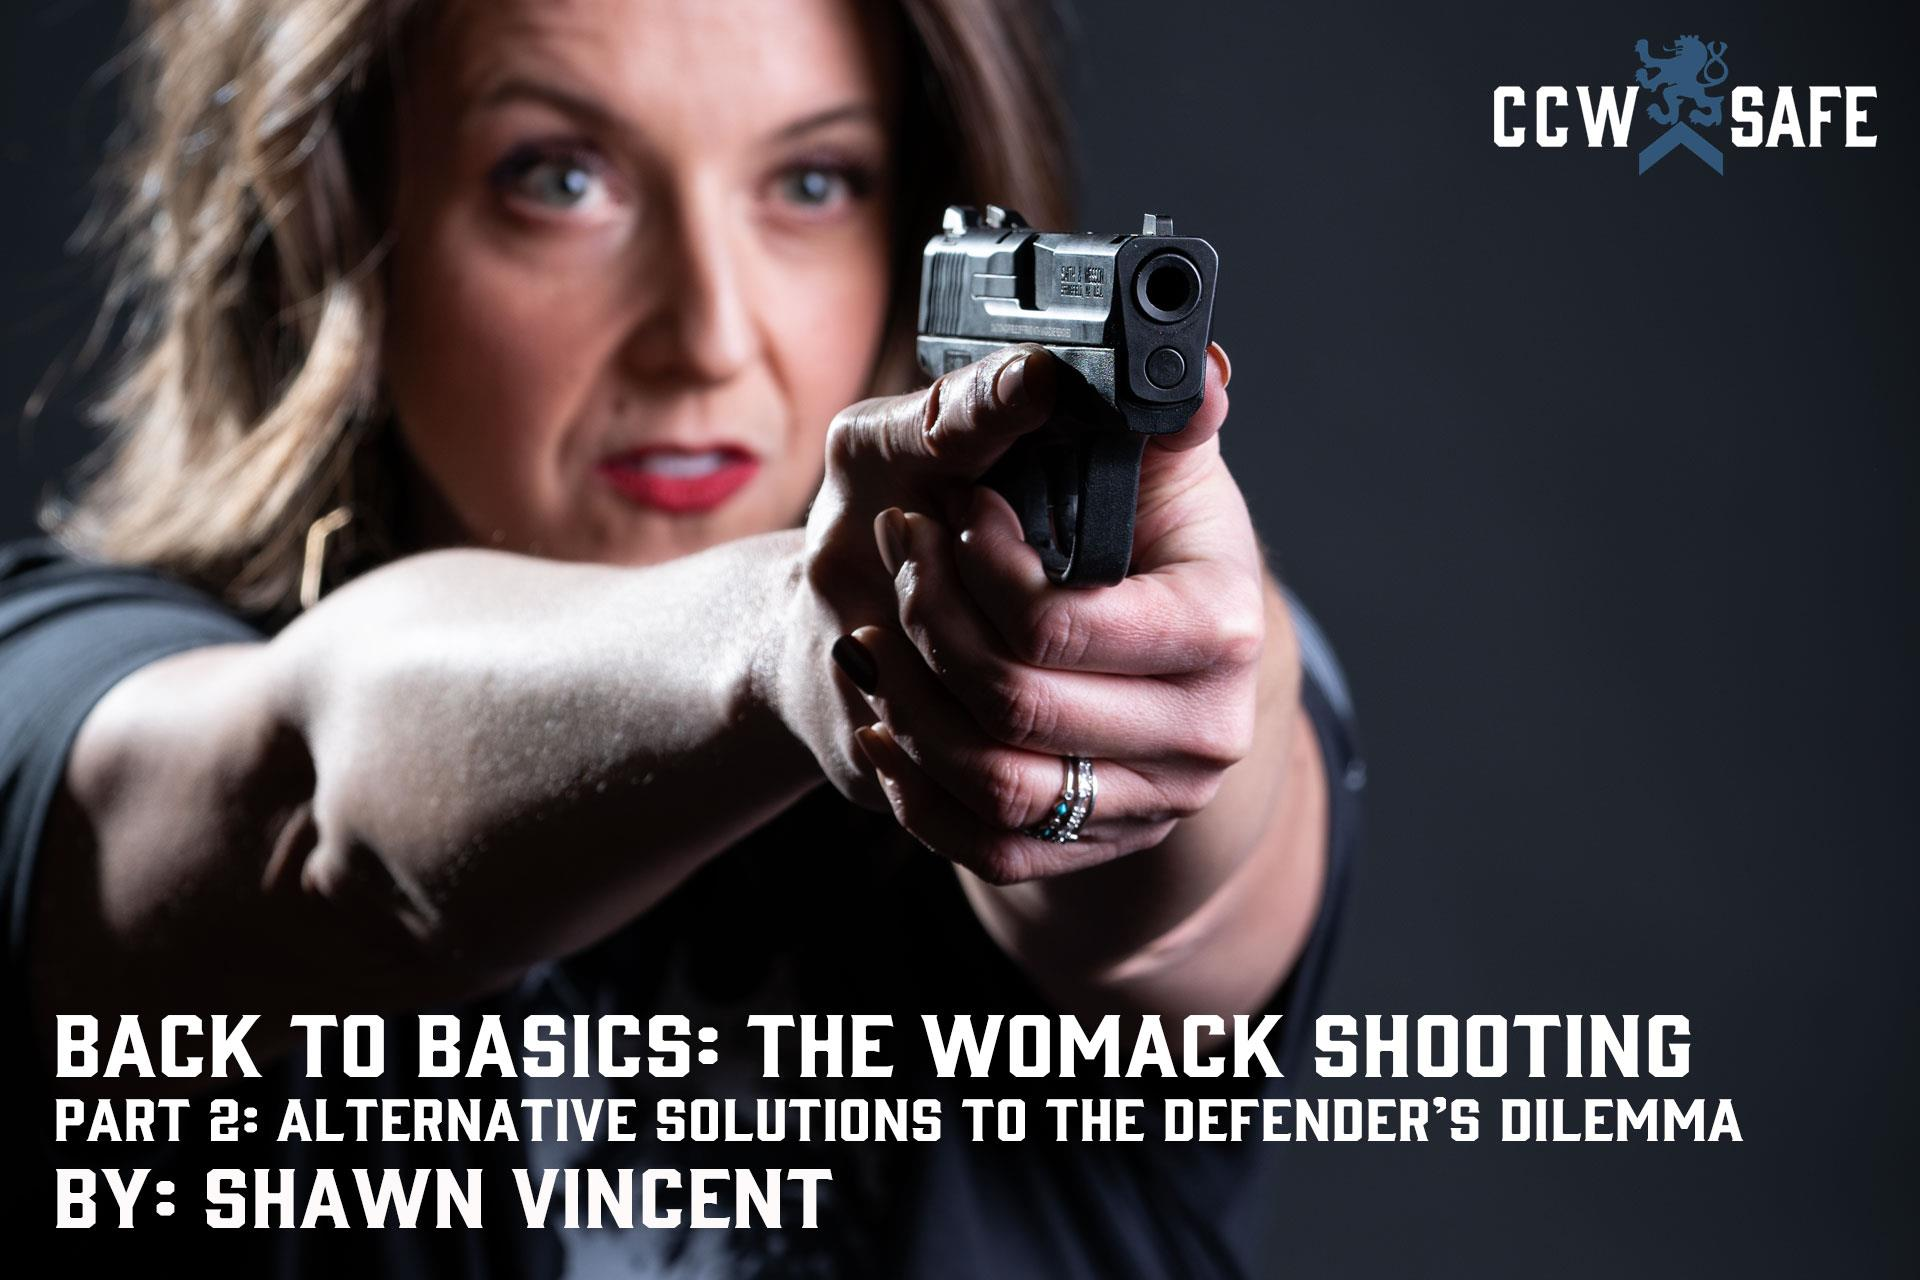 Back to Basics: The Womack Shooting Part 2